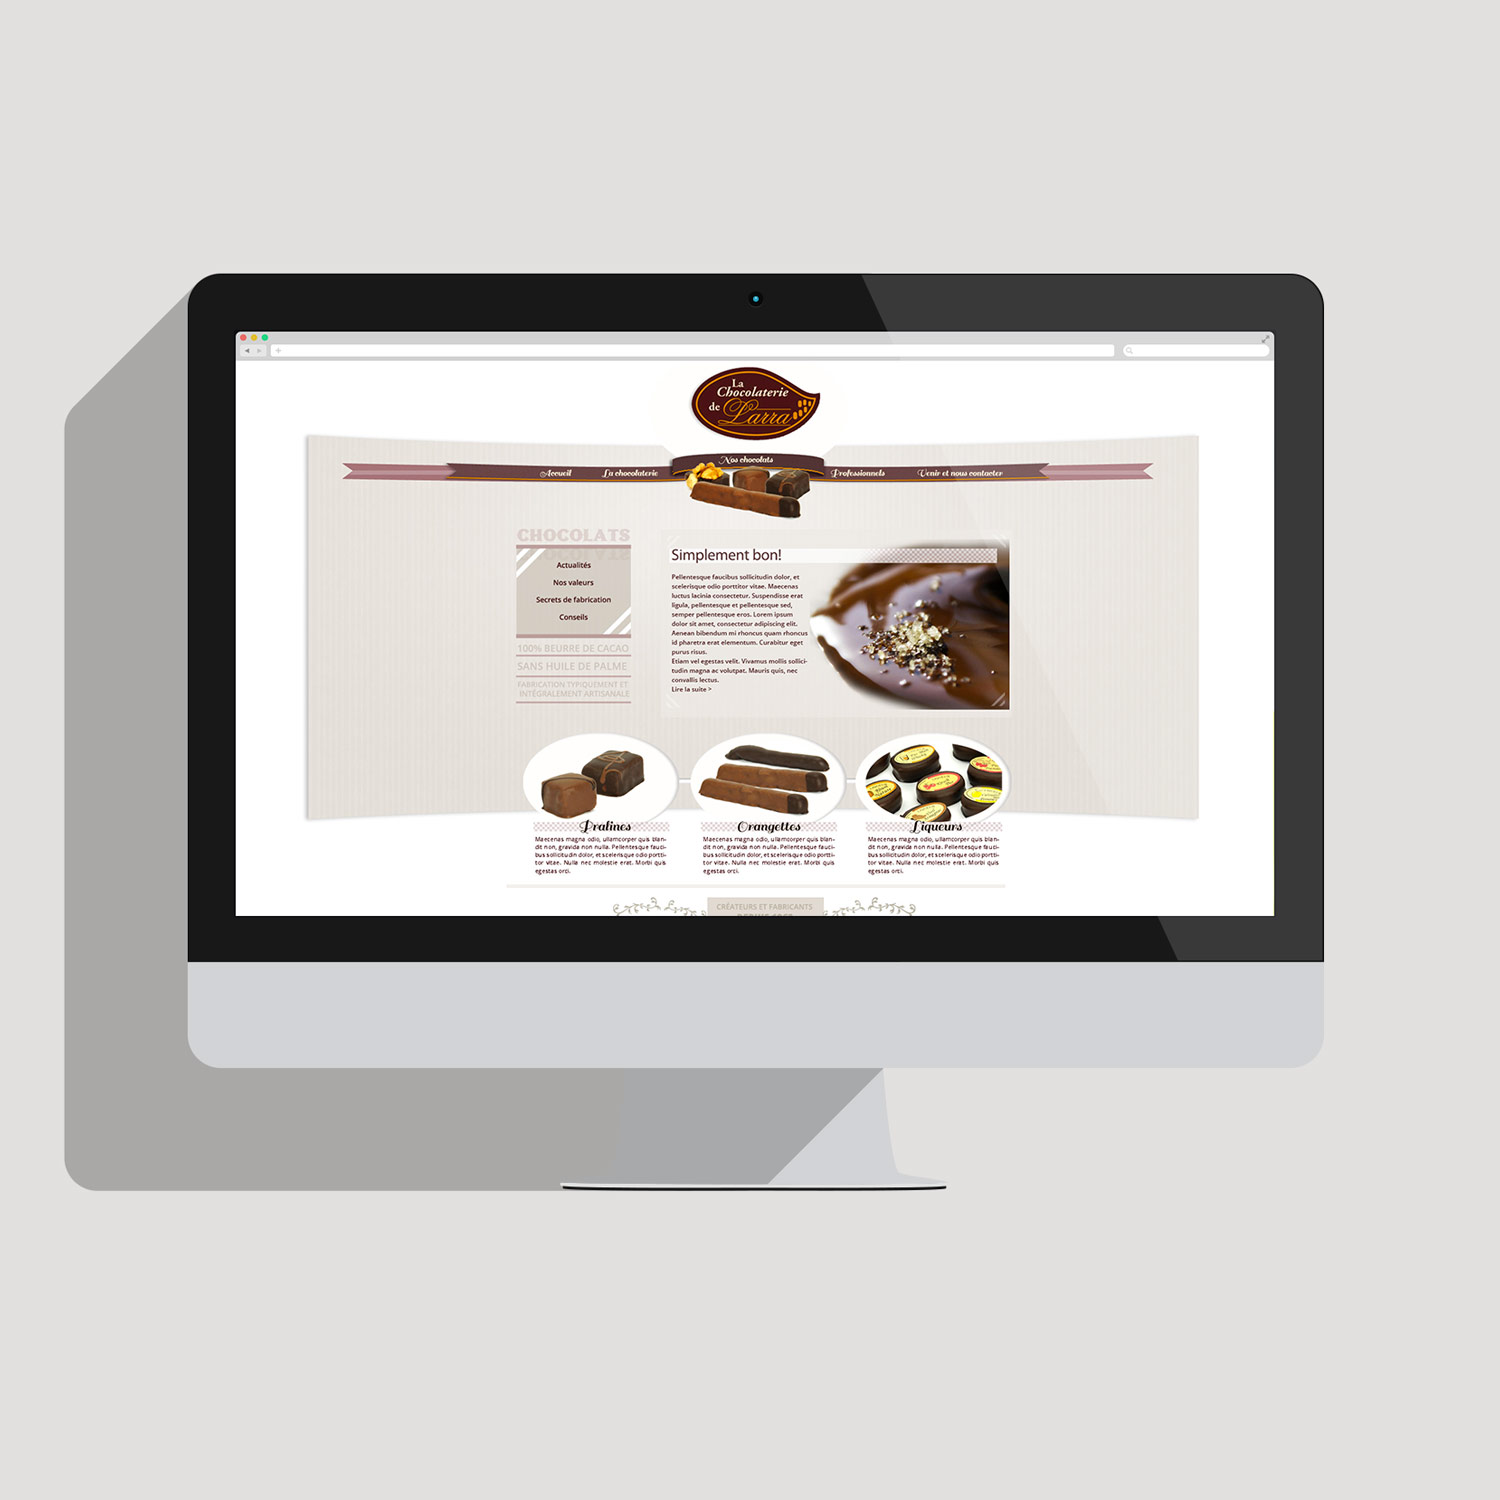 image du Wedesign site Internet chocolatier